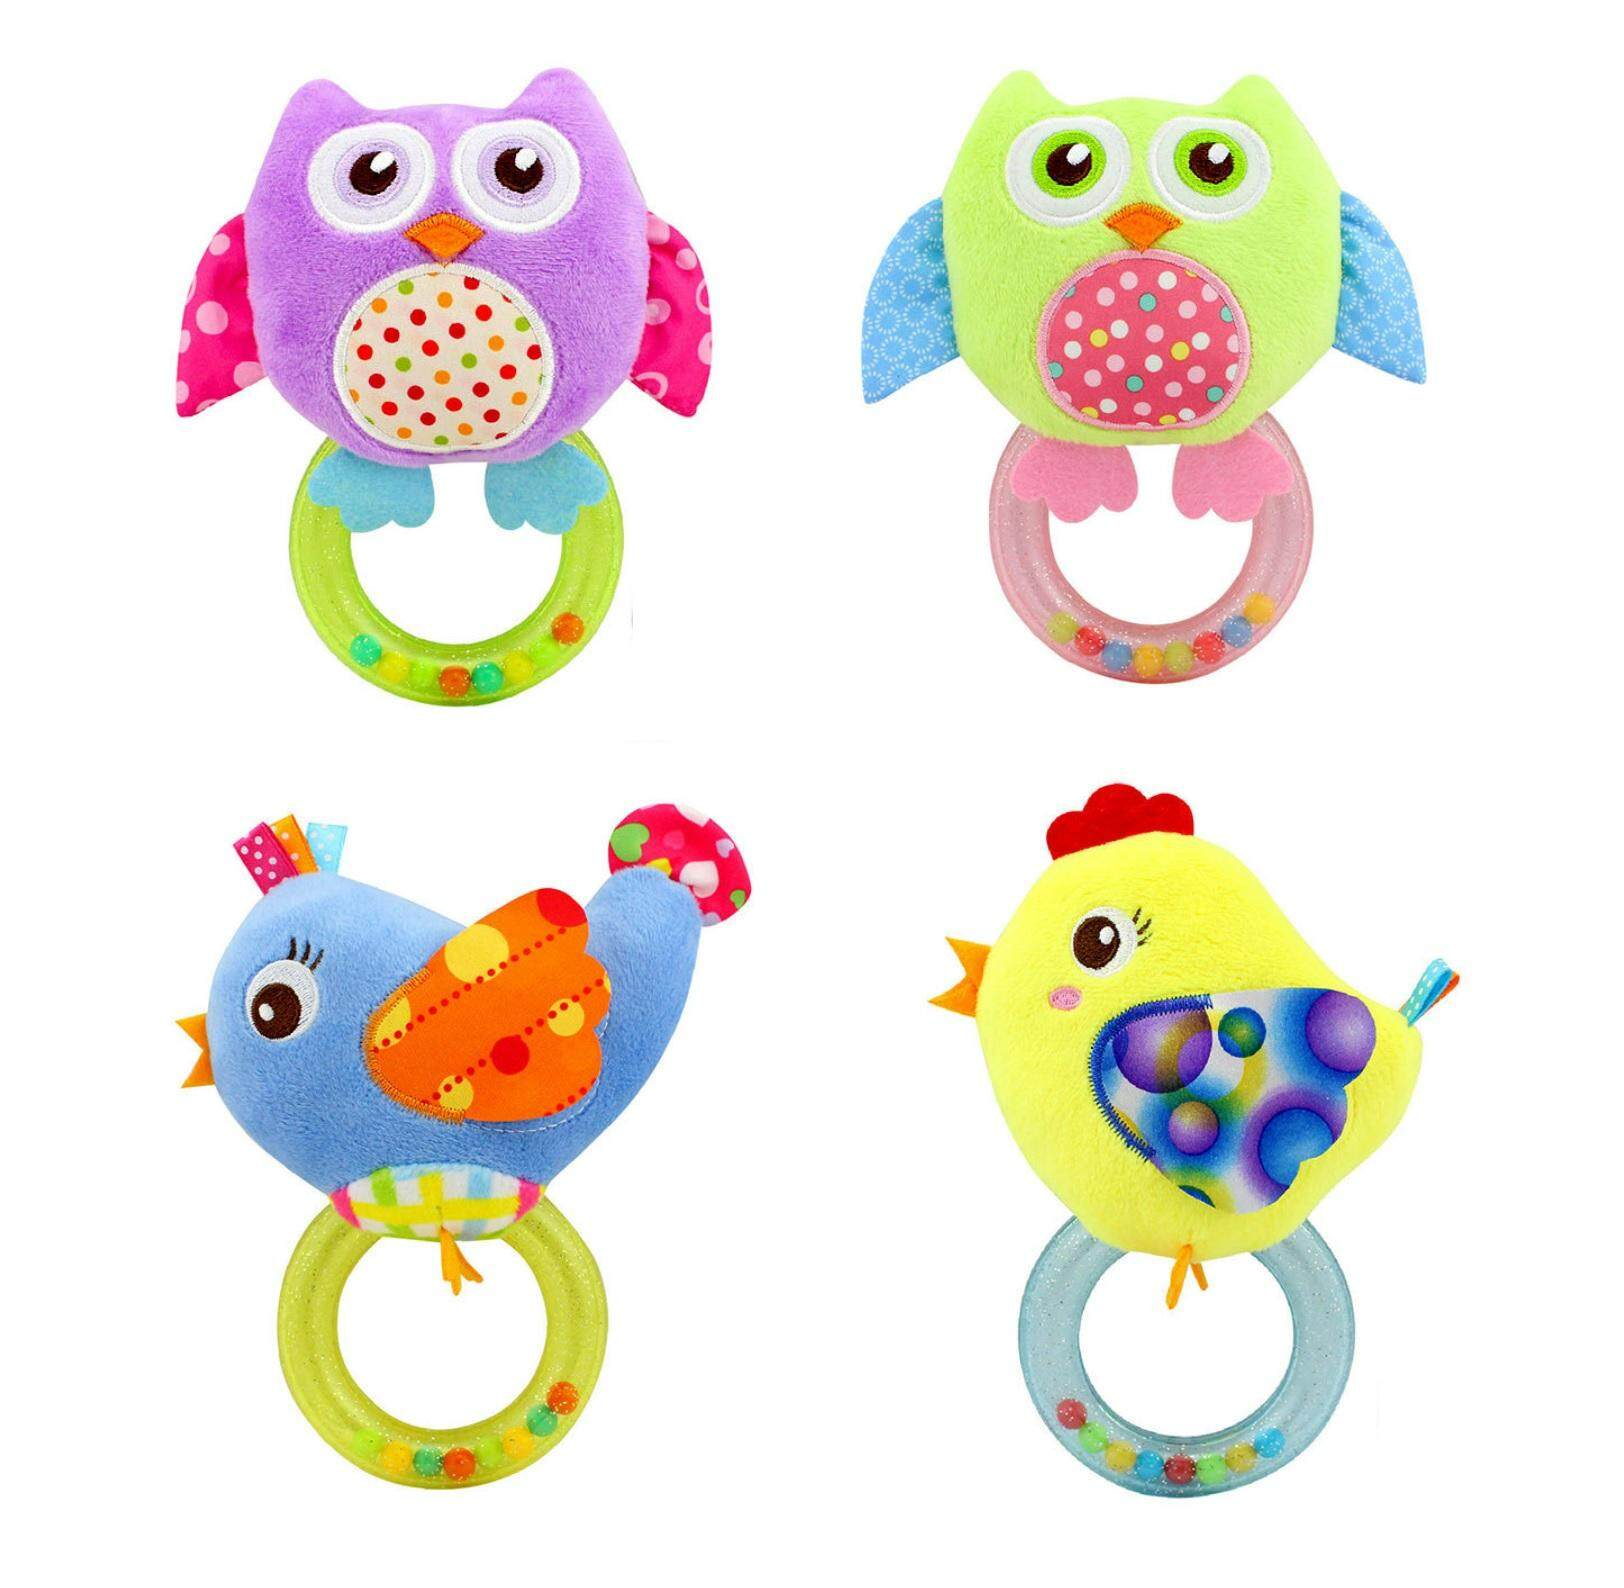 Features Happy Monkey Baby Rattles Toy Hand Rattle New Born Ange Teether Aa05